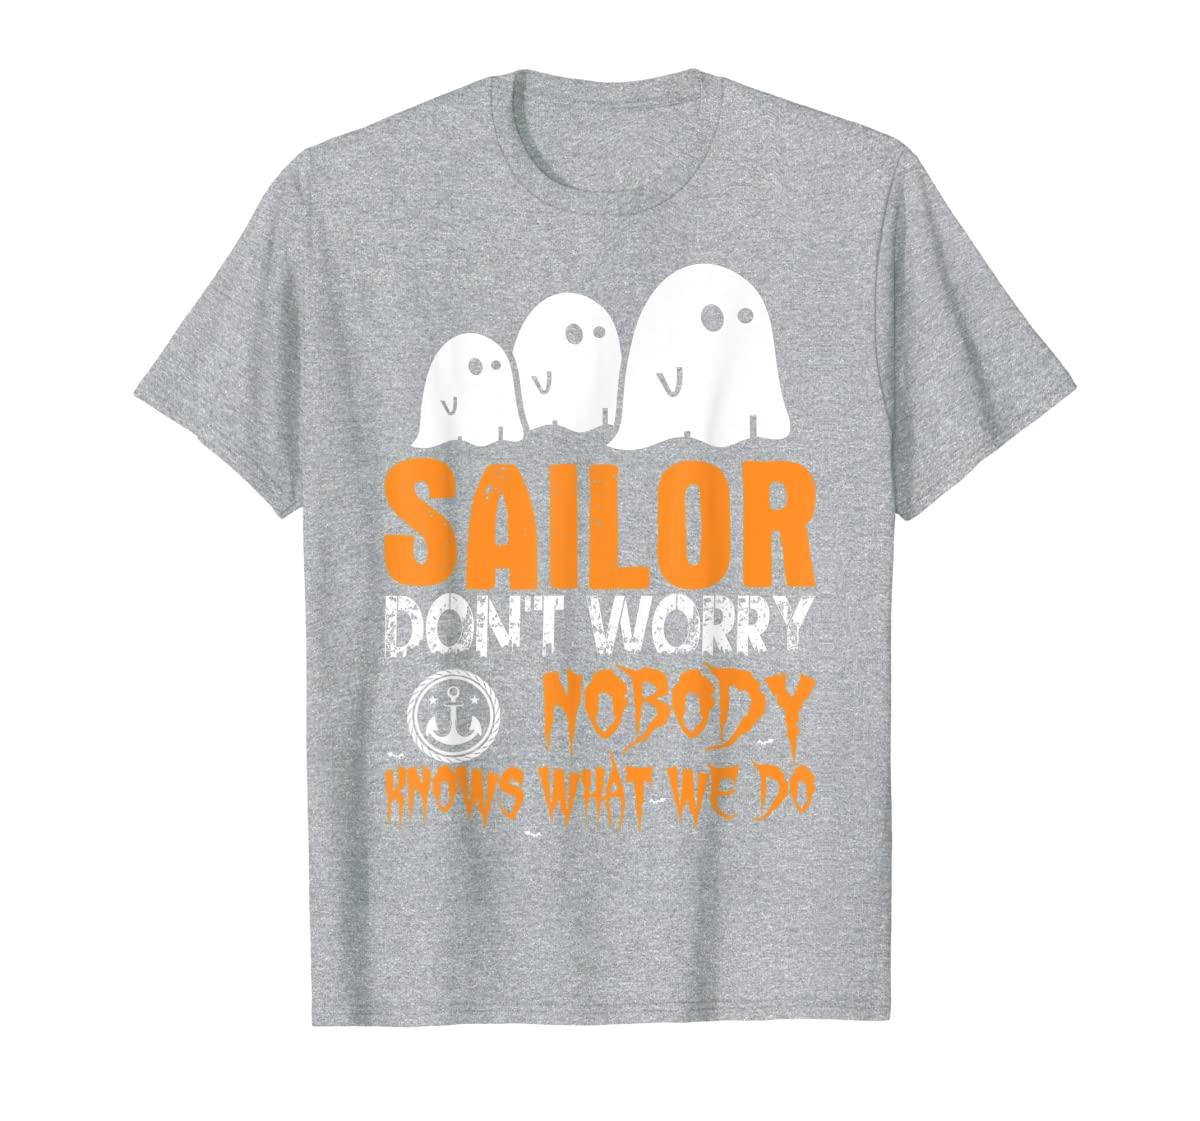 Sailor Nobody Knows What We Do Halloween T-Shirt-Men's T-Shirt-Sport Grey